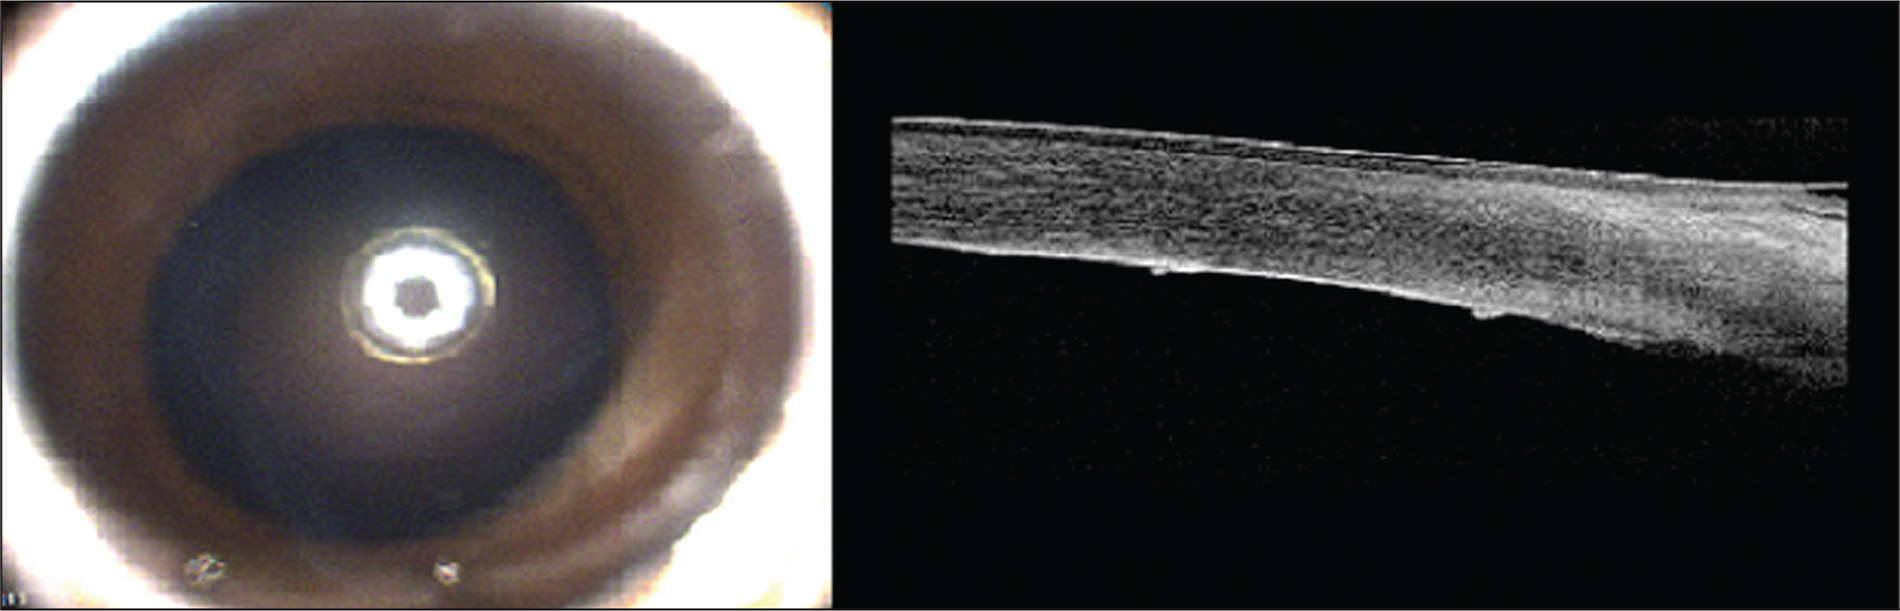 External photograph and anterior segment optical coherence tomography (AS-OCT) of patient 3. Multi-directional Haab striae involving the visual axis (left). AS-OCT showed the classic curled thickened edges of the broken Descemet membrane (right).